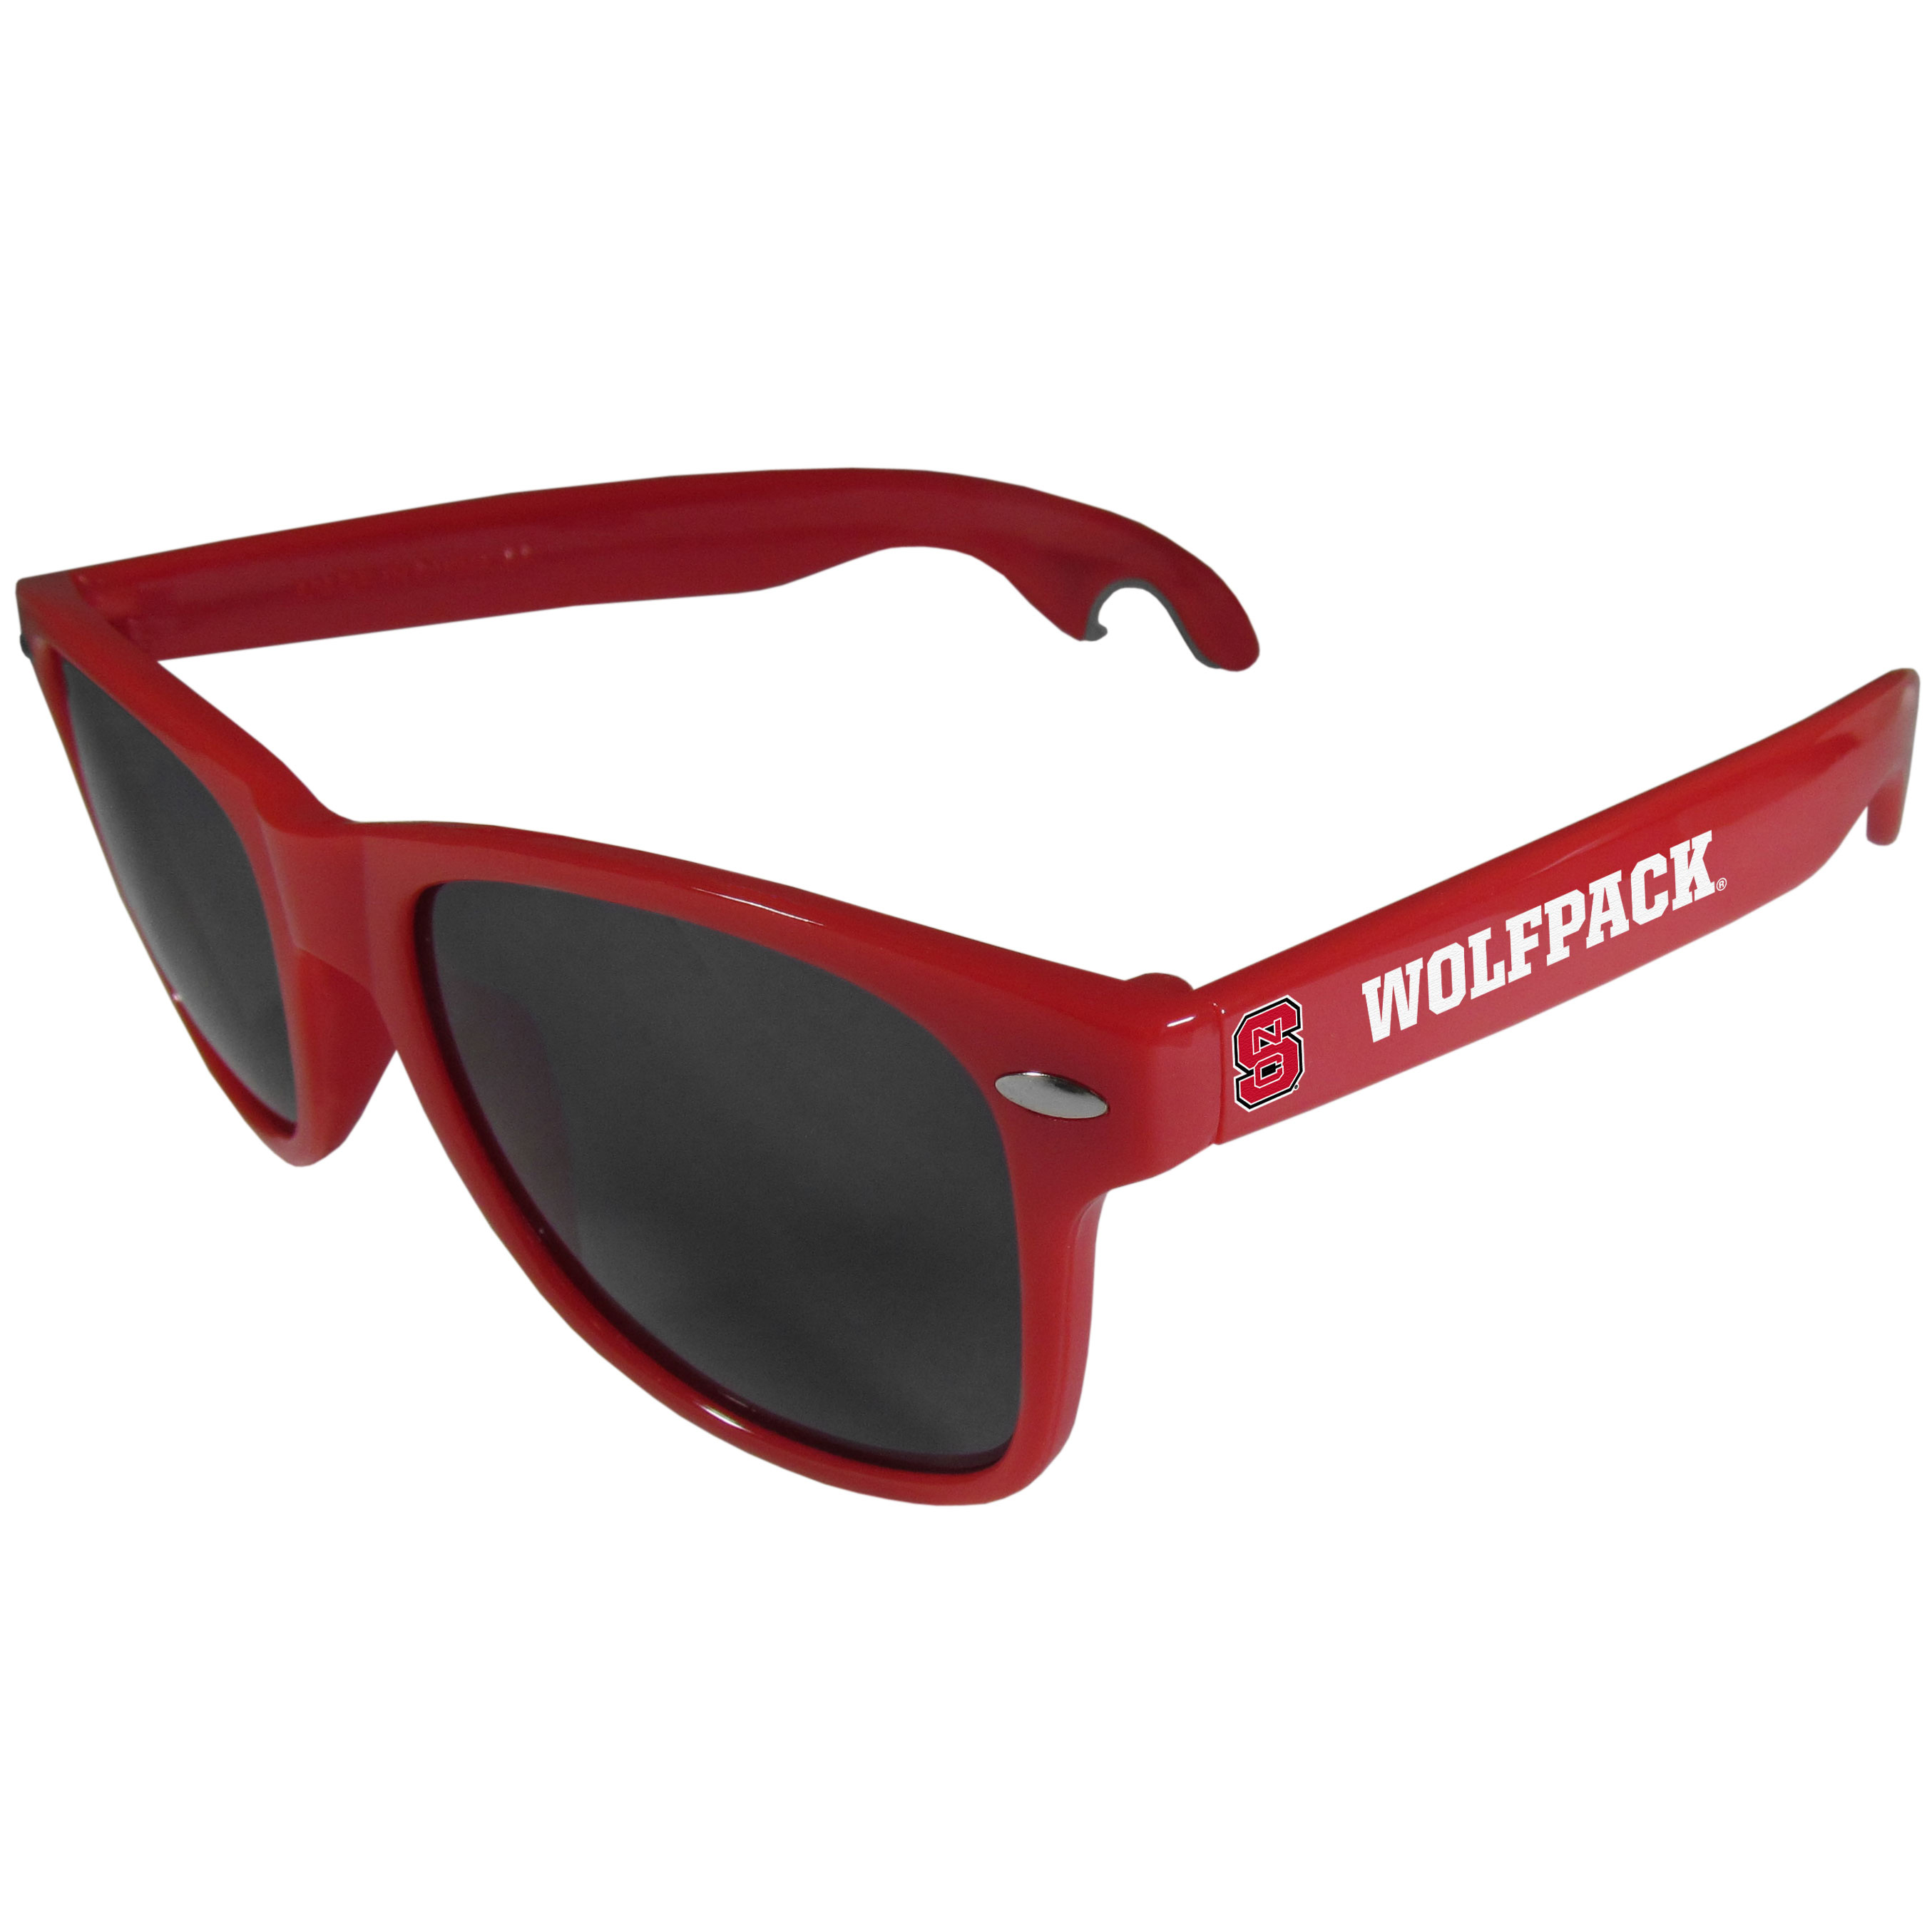 N. Carolina St. Wolfpack Beachfarer Bottle Opener Sunglasses, Red - Seriously, these sunglasses open bottles! Keep the party going with these amazing N. Carolina St. Wolfpack bottle opener sunglasses. The stylish retro frames feature team designs on the arms and functional bottle openers on the end of the arms. Whether you are at the beach or having a backyard BBQ on game day, these shades will keep your eyes protected with 100% UVA/UVB protection and keep you hydrated with the handy bottle opener arms.